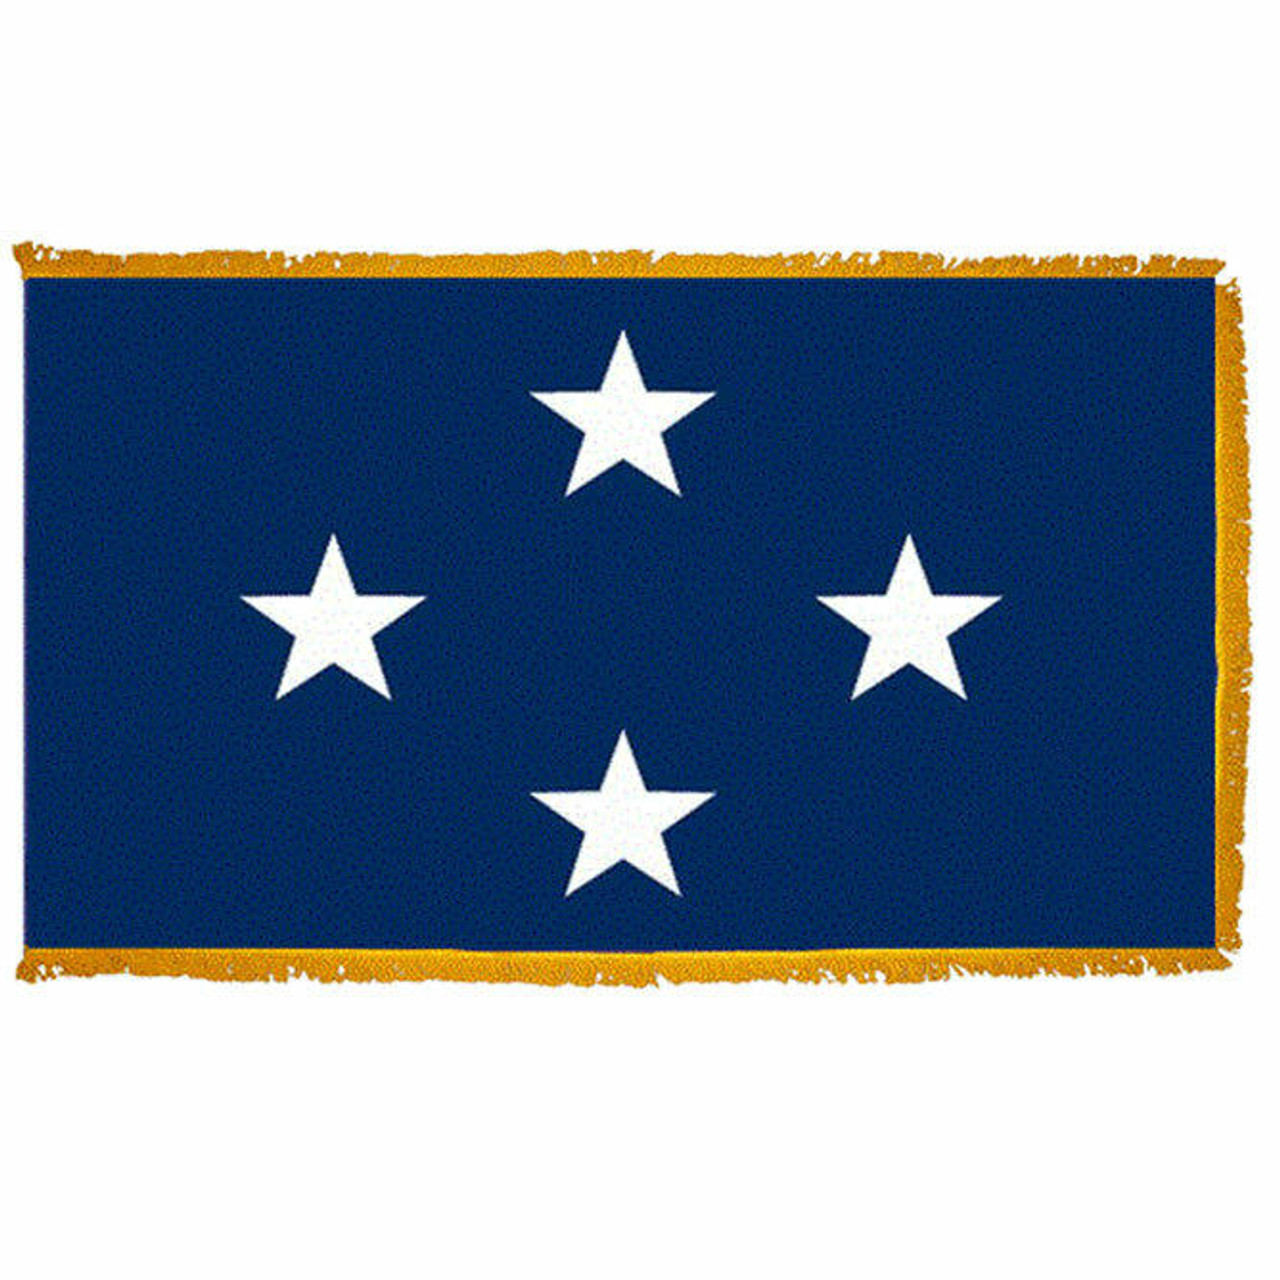 Navy Seagoing 4 Star Officer Indoor Flag